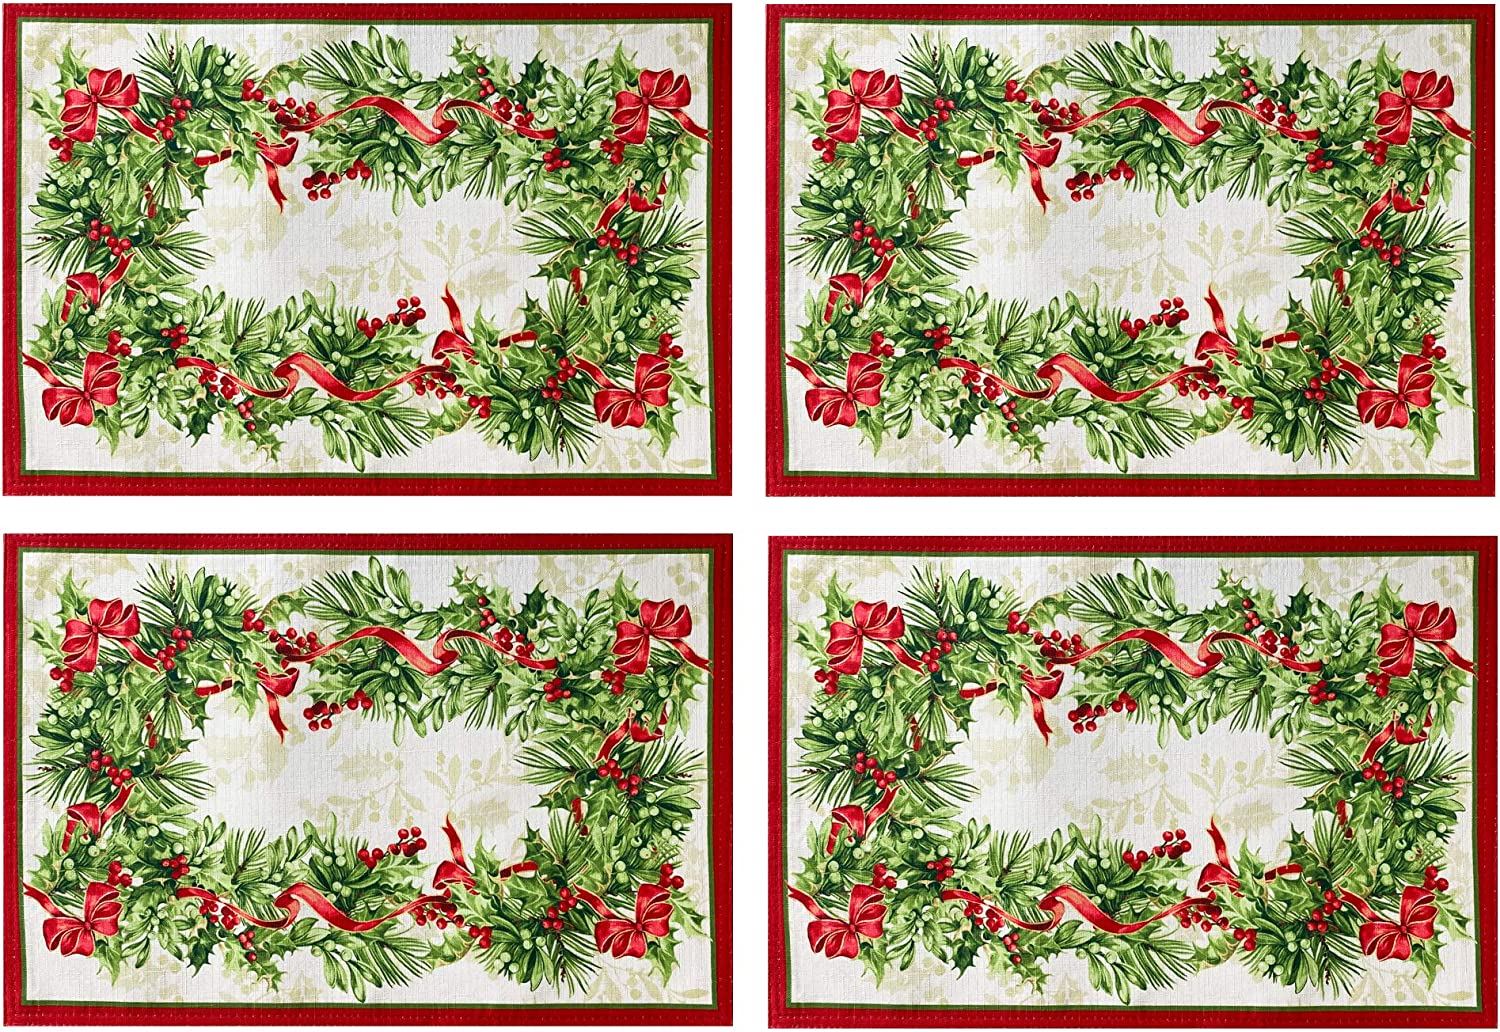 Boughs of Holly and Berry Ribbon Garland Print Easy Care Tablecloths and Napkins Newbridge Holly Ribbon Traditions Bordered Christmas Fabric Tablecloth Set of 4 Placemats